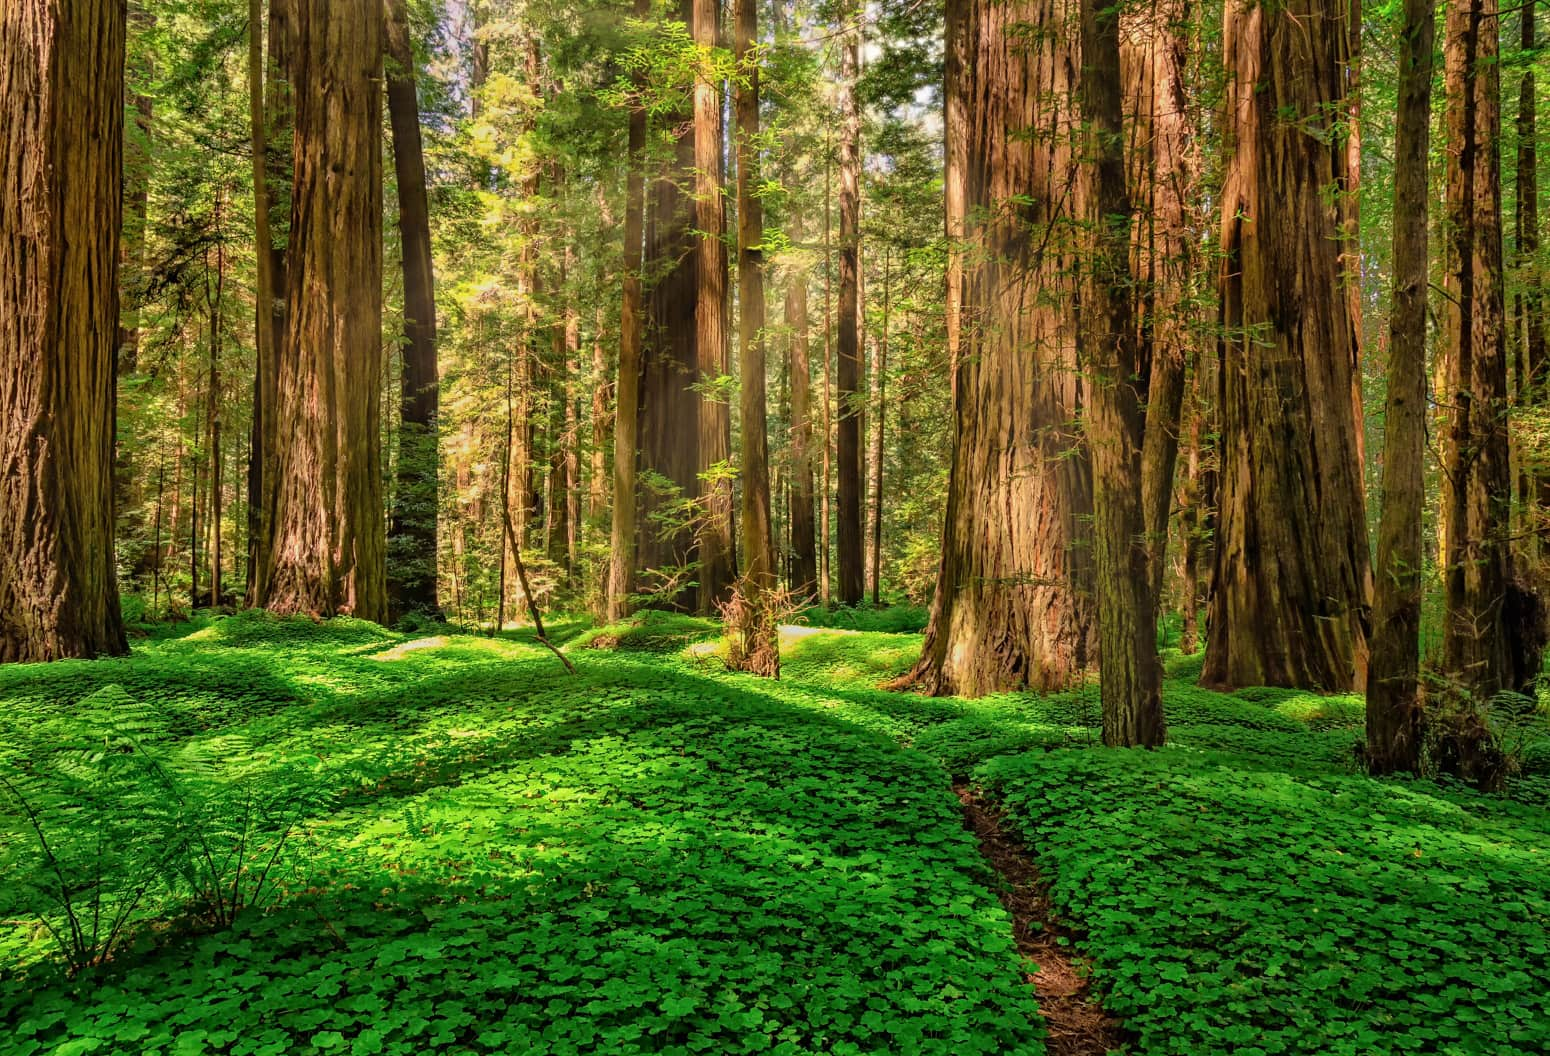 A path leading through a forest of redwoods in California